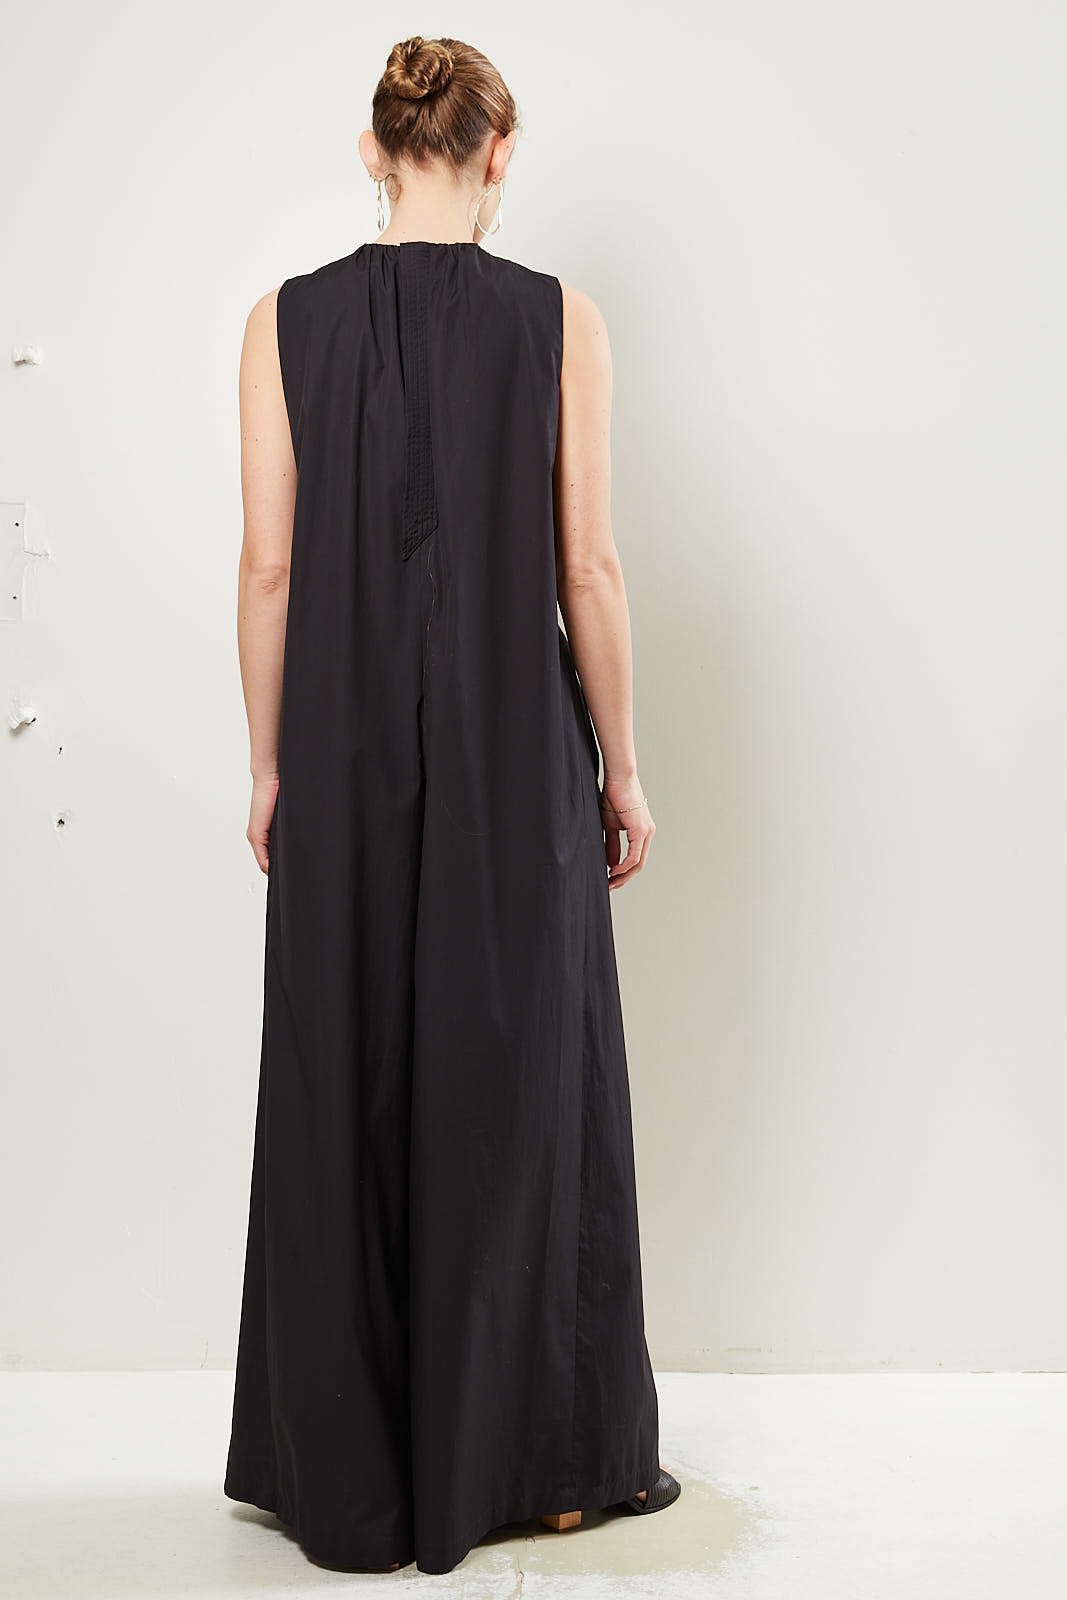 Christian Wijnants - Oman ruched detail jumpsuit.